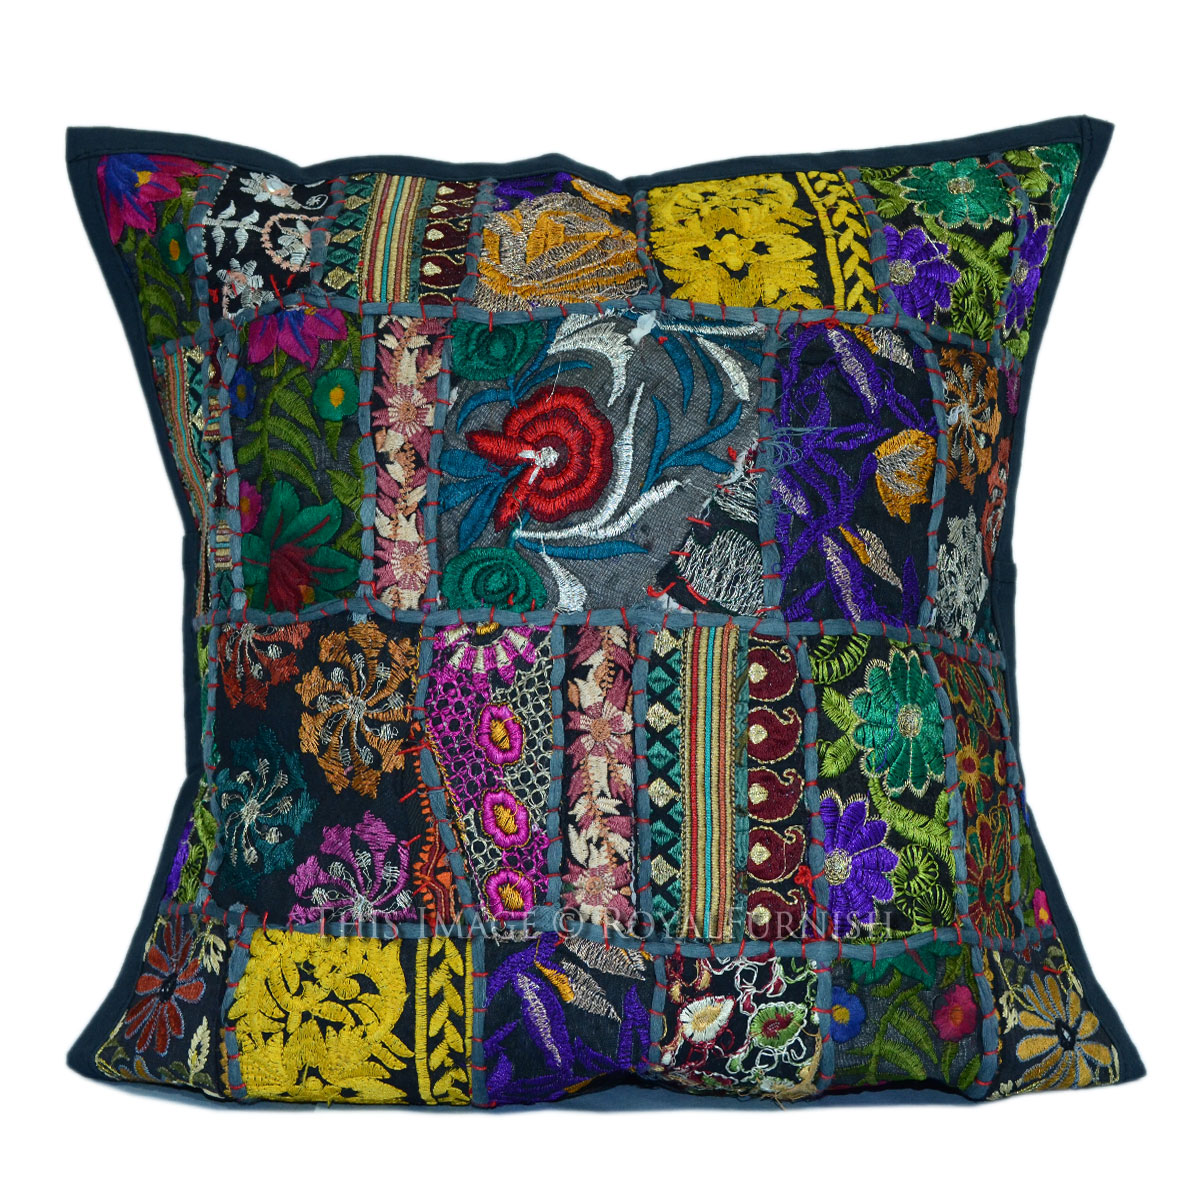 Black Tribal Throw Pillow : Black Tribal Patchwork Decorative & Accent Cotton Pillow ...